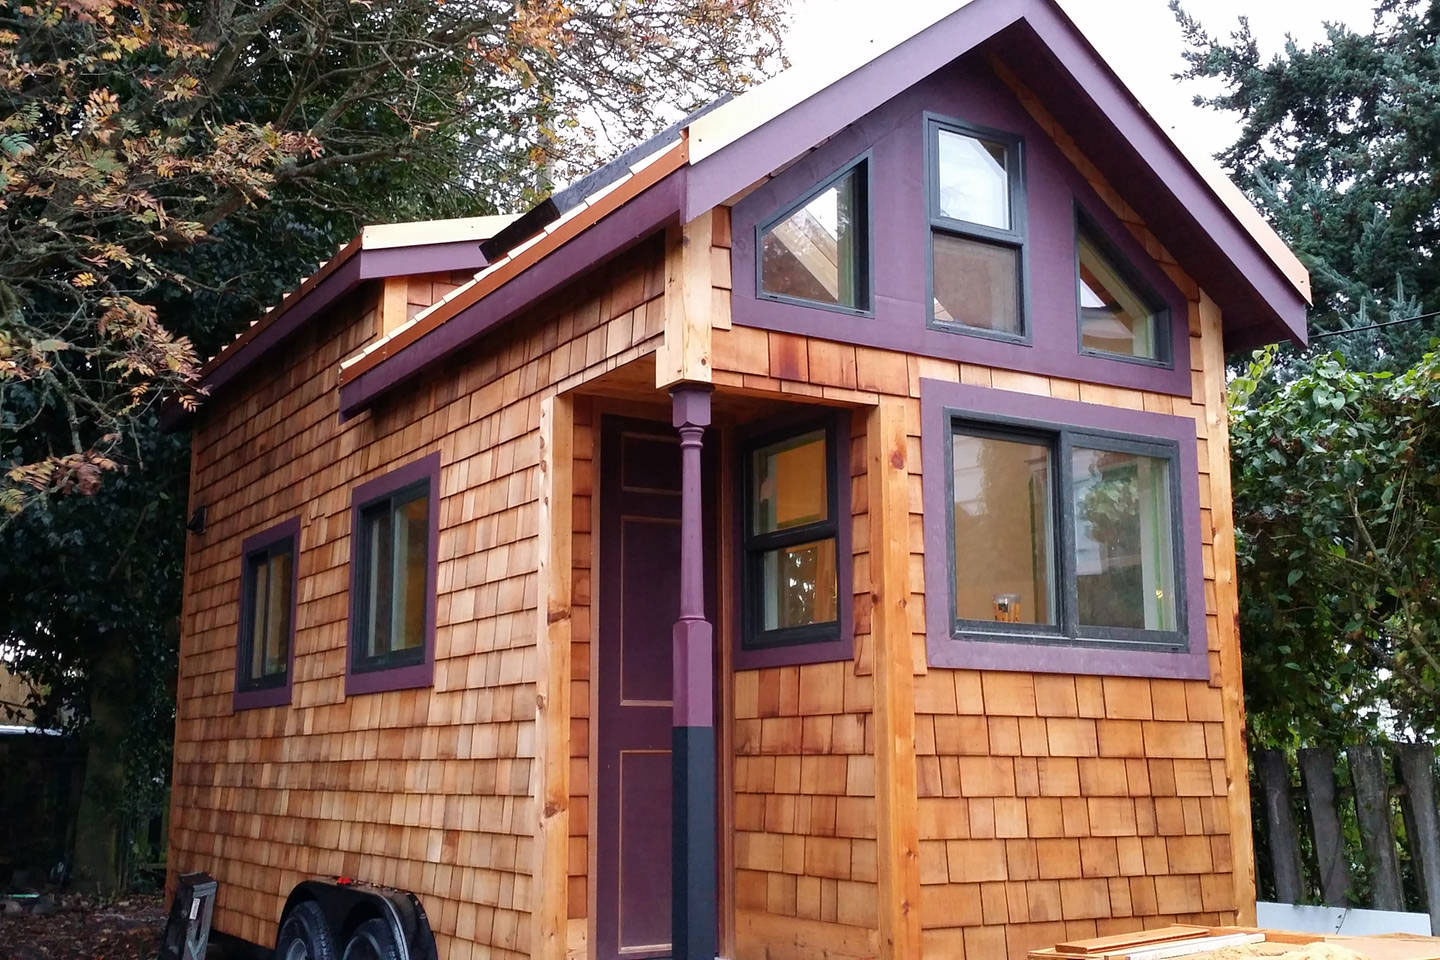 Stay in hannah 39 s tiny house in seattle small is beautiful for Building on to my house